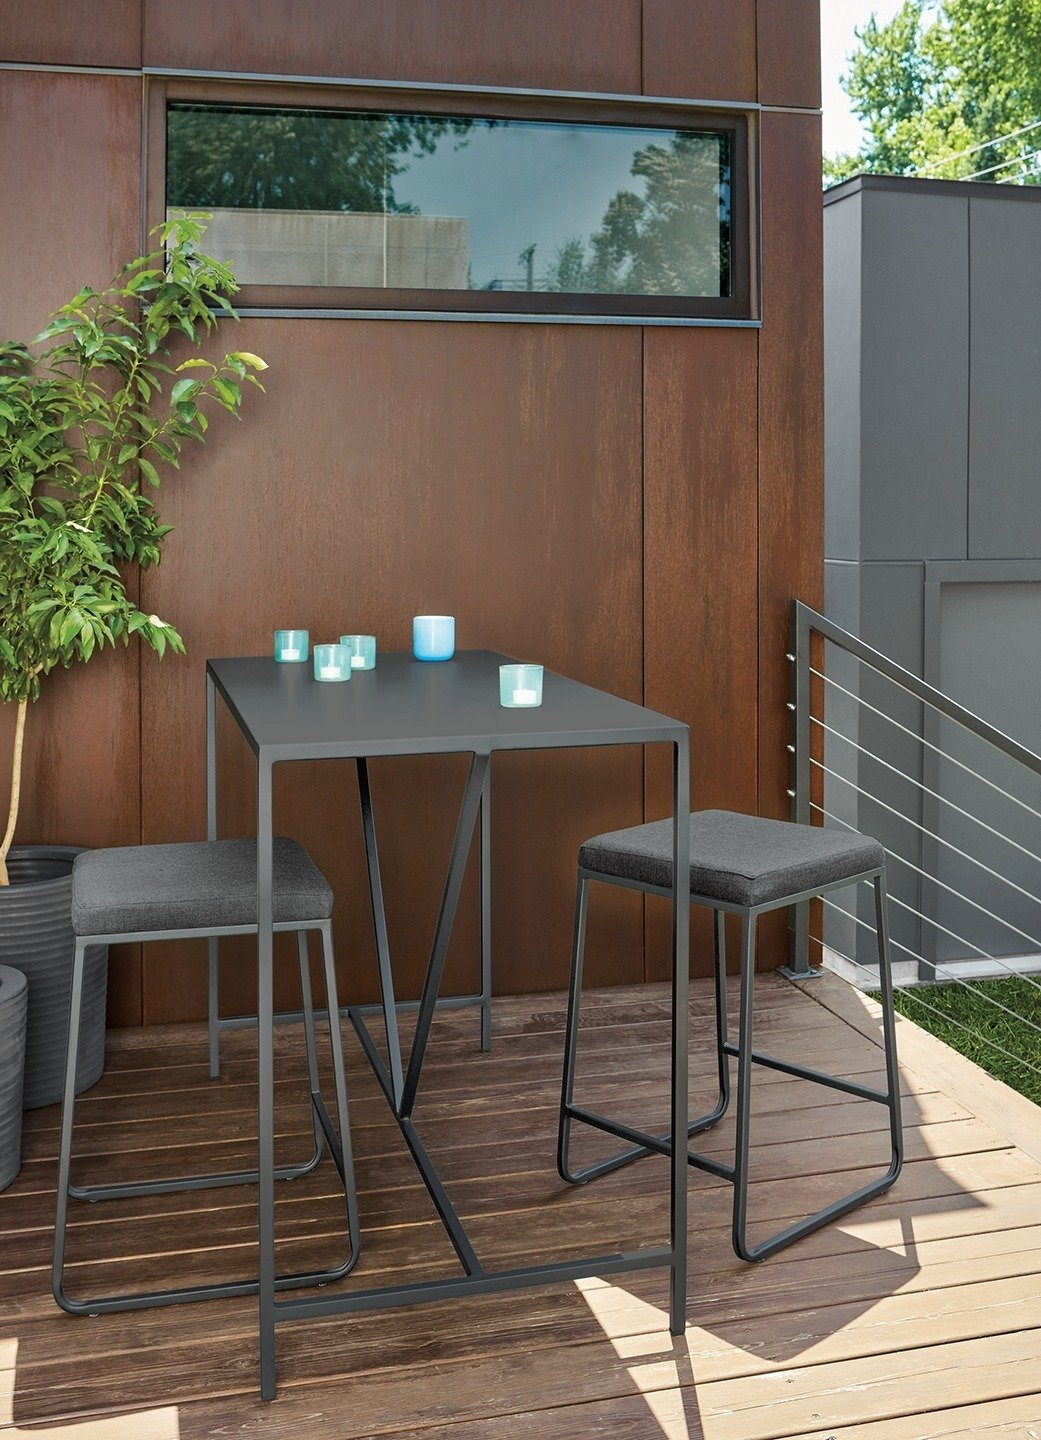 Outdoor, Wood Patio, Porch, Deck, Back Yard, Small Patio, Porch, Deck, and Planters Patio, Porch, Deck Slim counter table, Rollins stools  Photo 5 of 8 in Expert Design Advice: Outdoor Dining Spaces